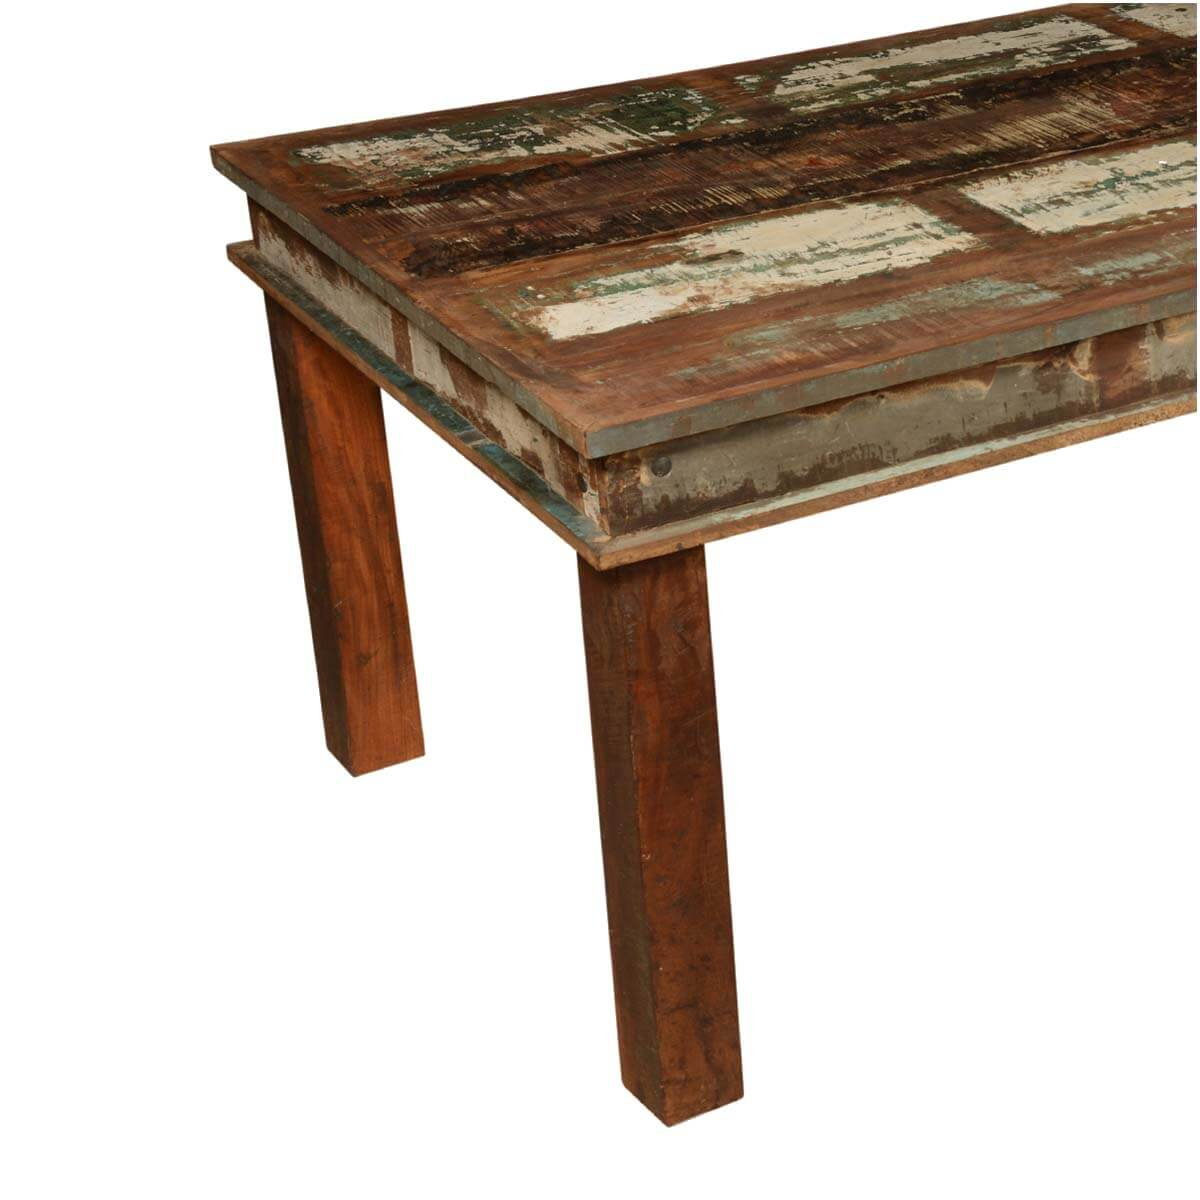 Distressed Reclaimed Wood Rustic Dining Table Buy Dining